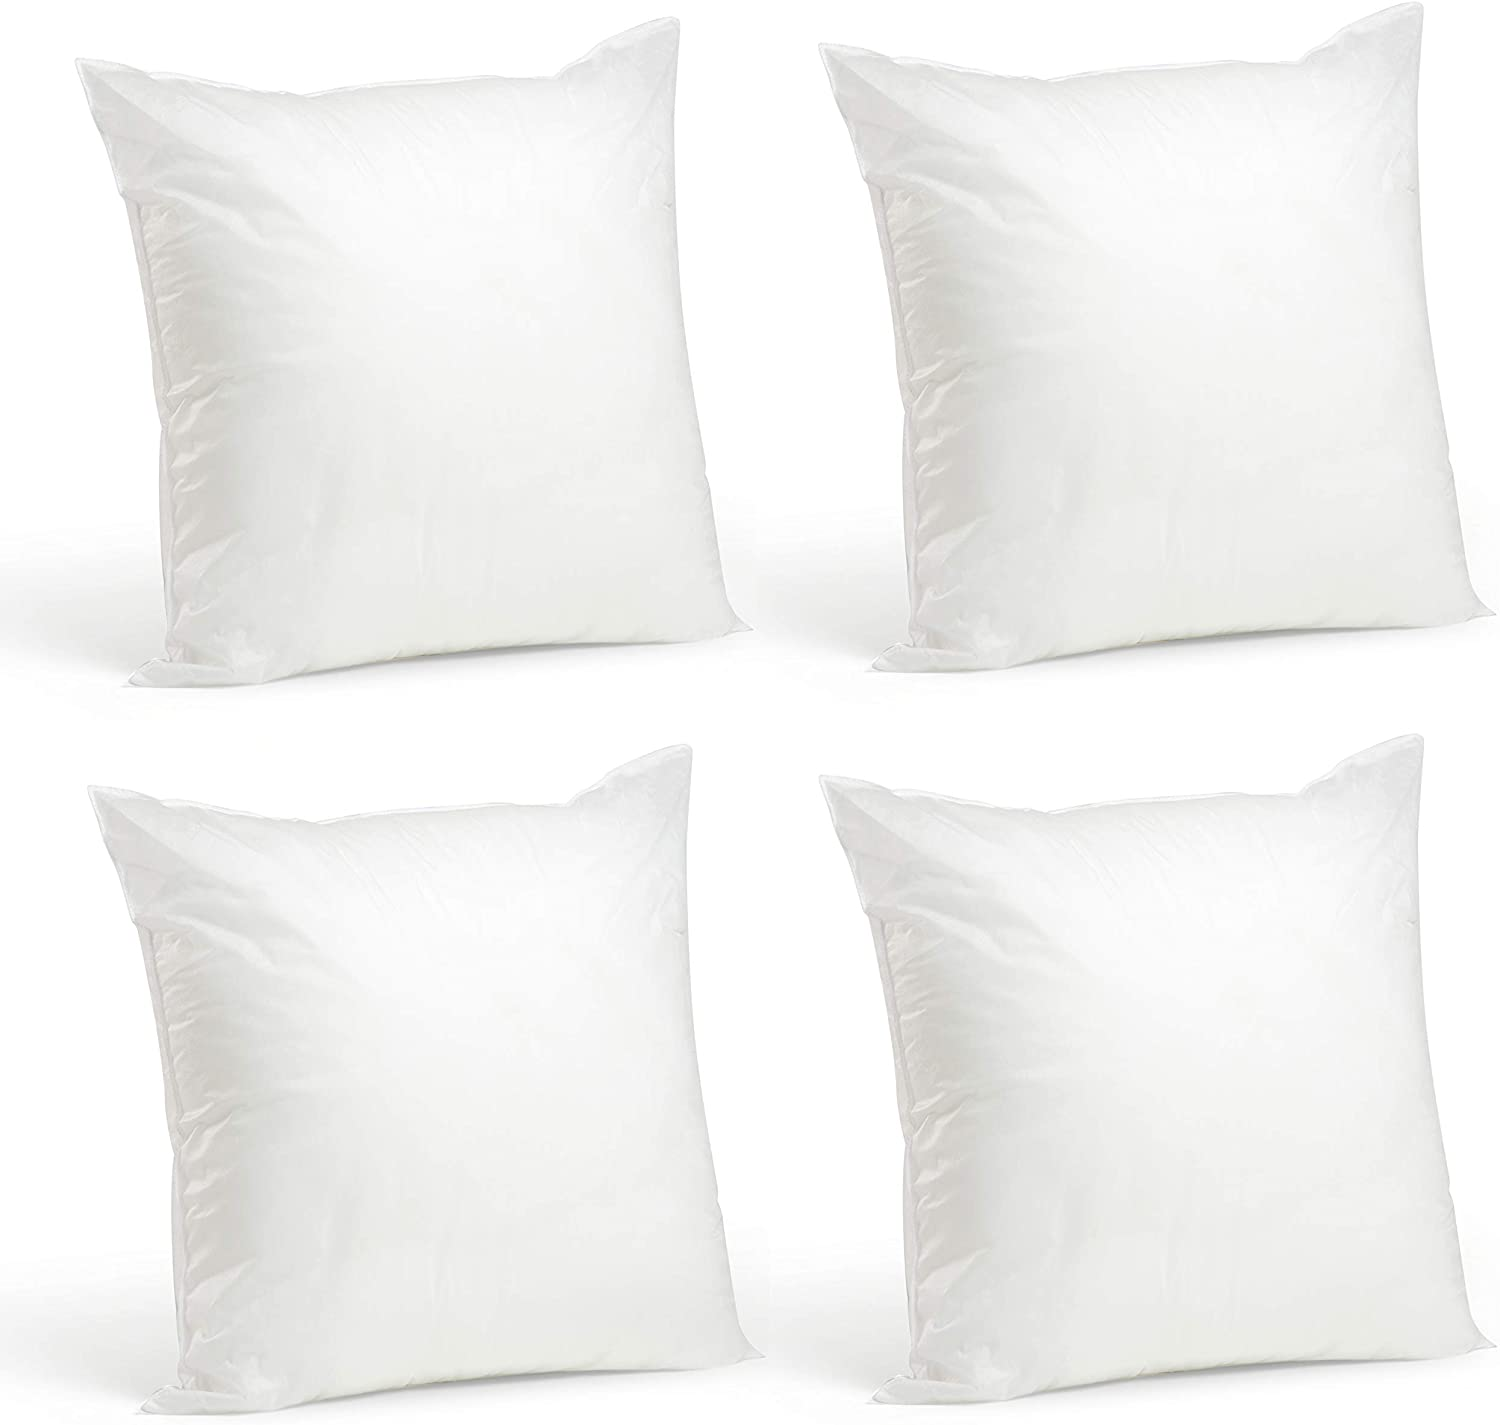 Foamily Throw Pillows Insert Set of 4-20 x 20 Insert for Decorative Pillow Covers - Made in USA - Bed and Couch Pillows : Home & Kitchen